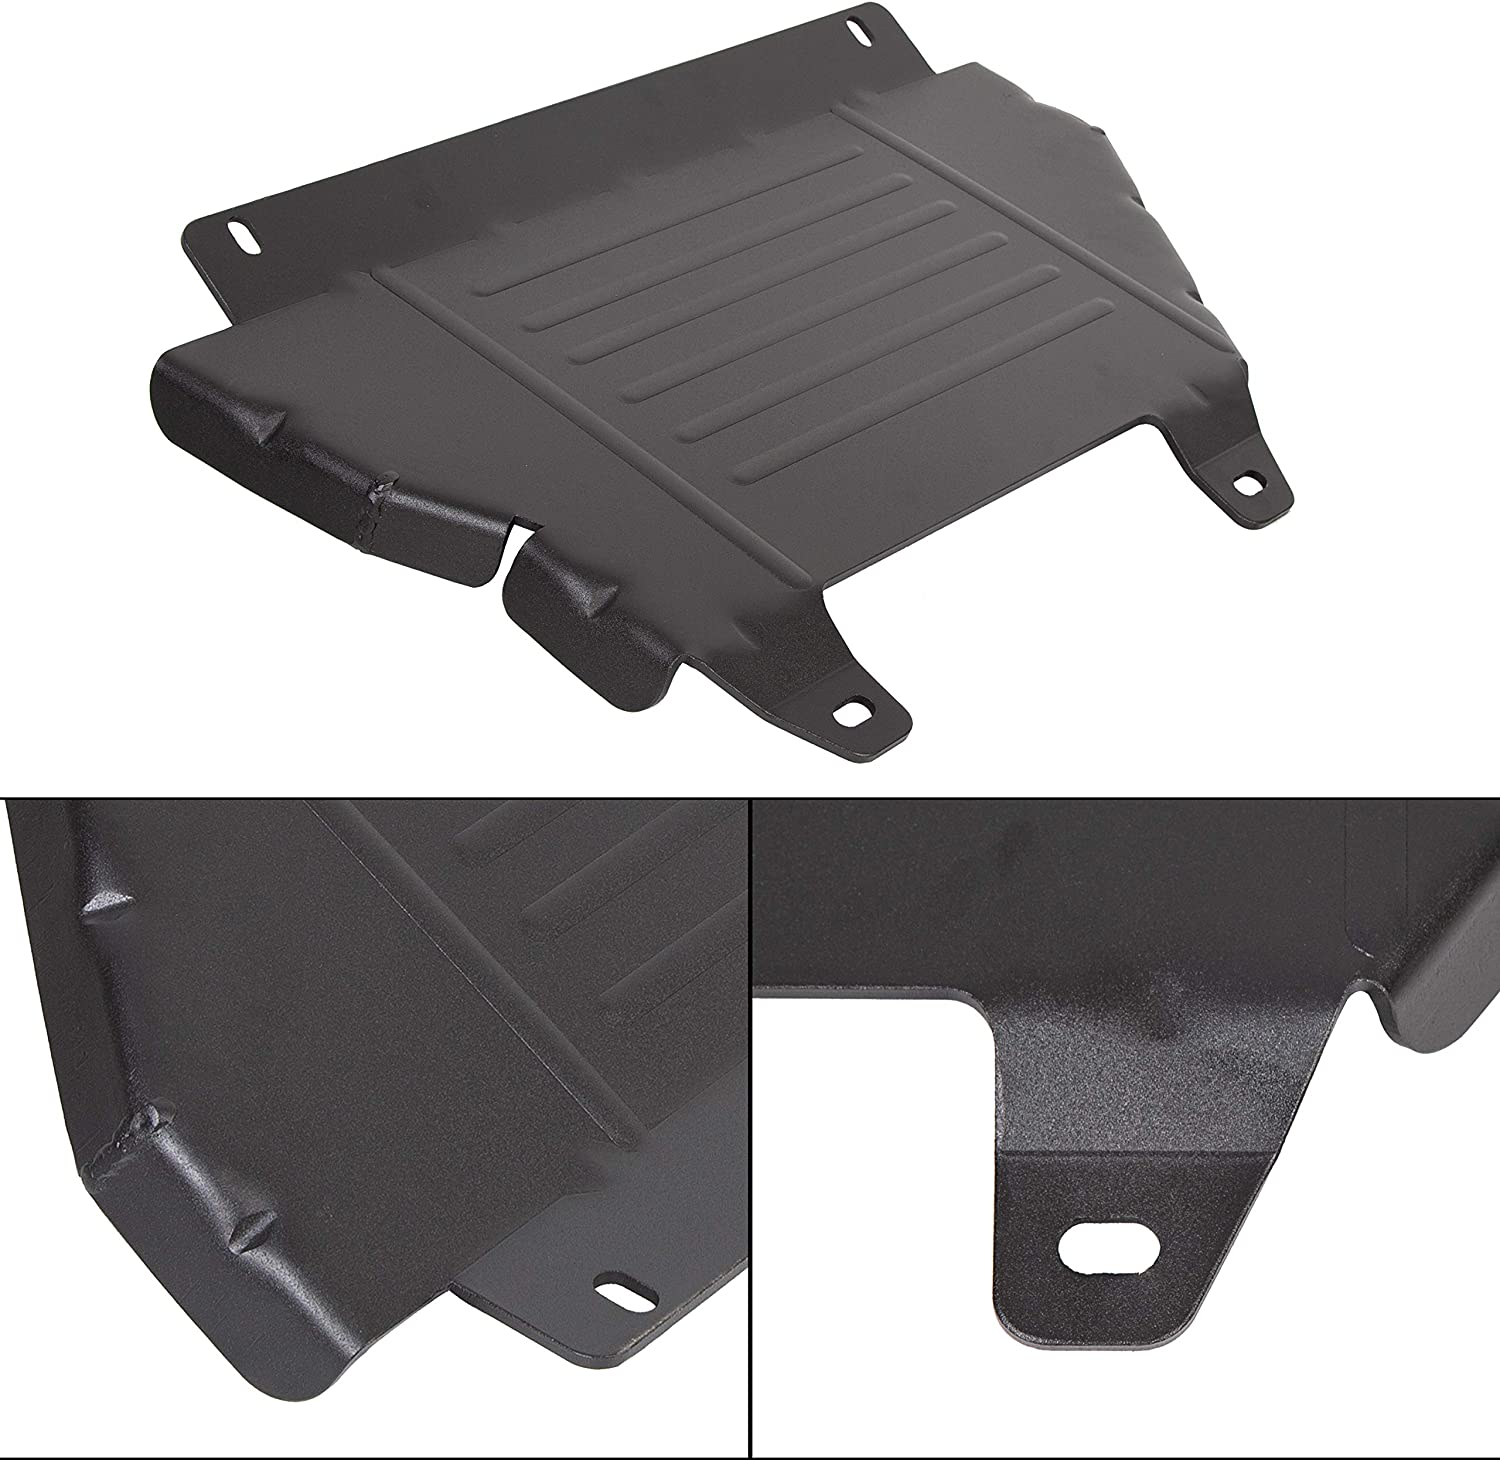 Opening large release sale ECOTRIC Front Skid Plate Compatible Elegant Colorad Chevy 2015-2019 with